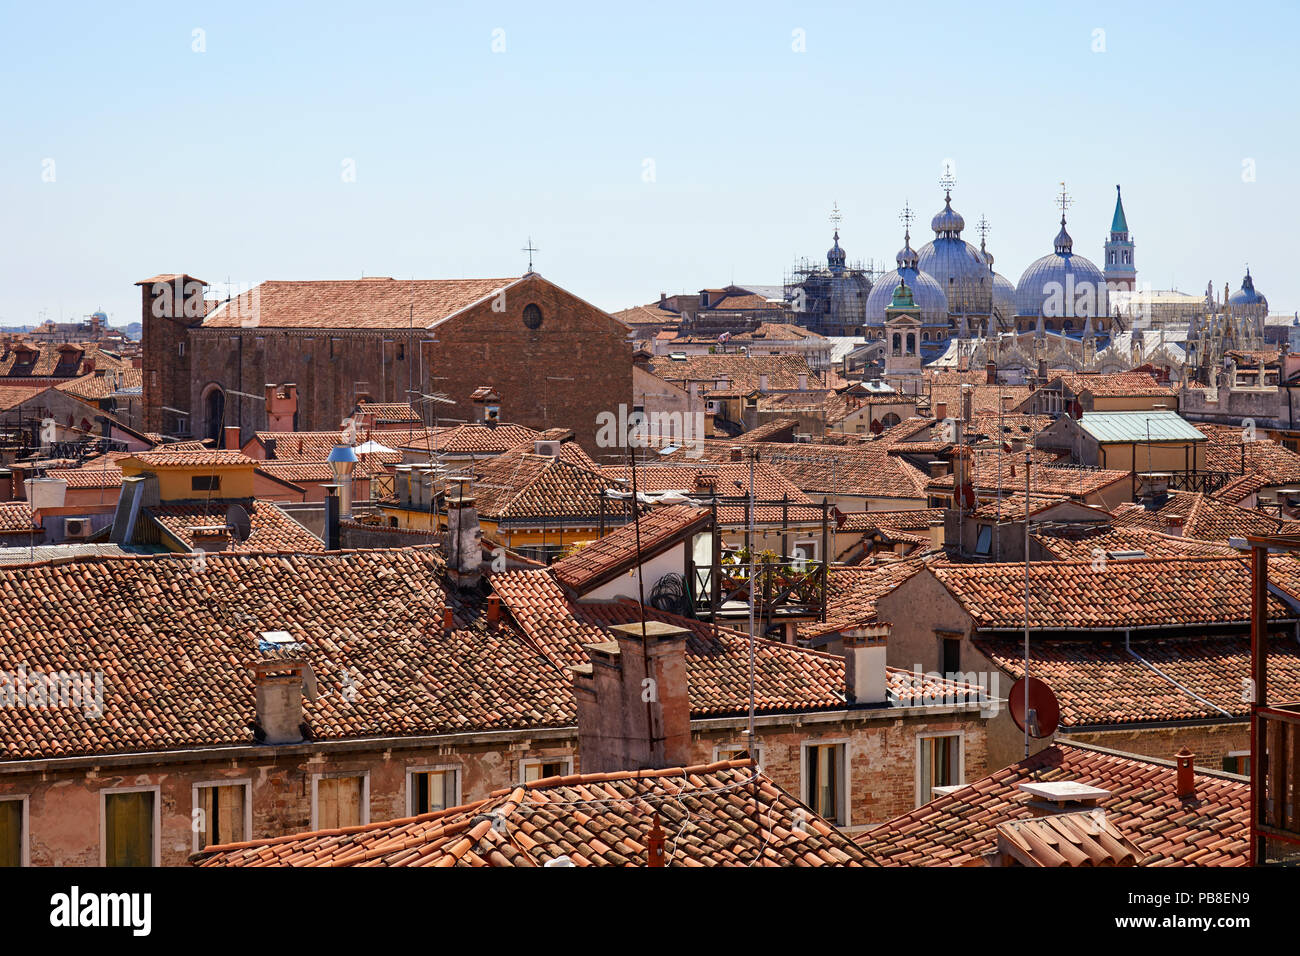 Venice roofs, bricks buildings and San Marco basilica domes in summer, Italy - Stock Image